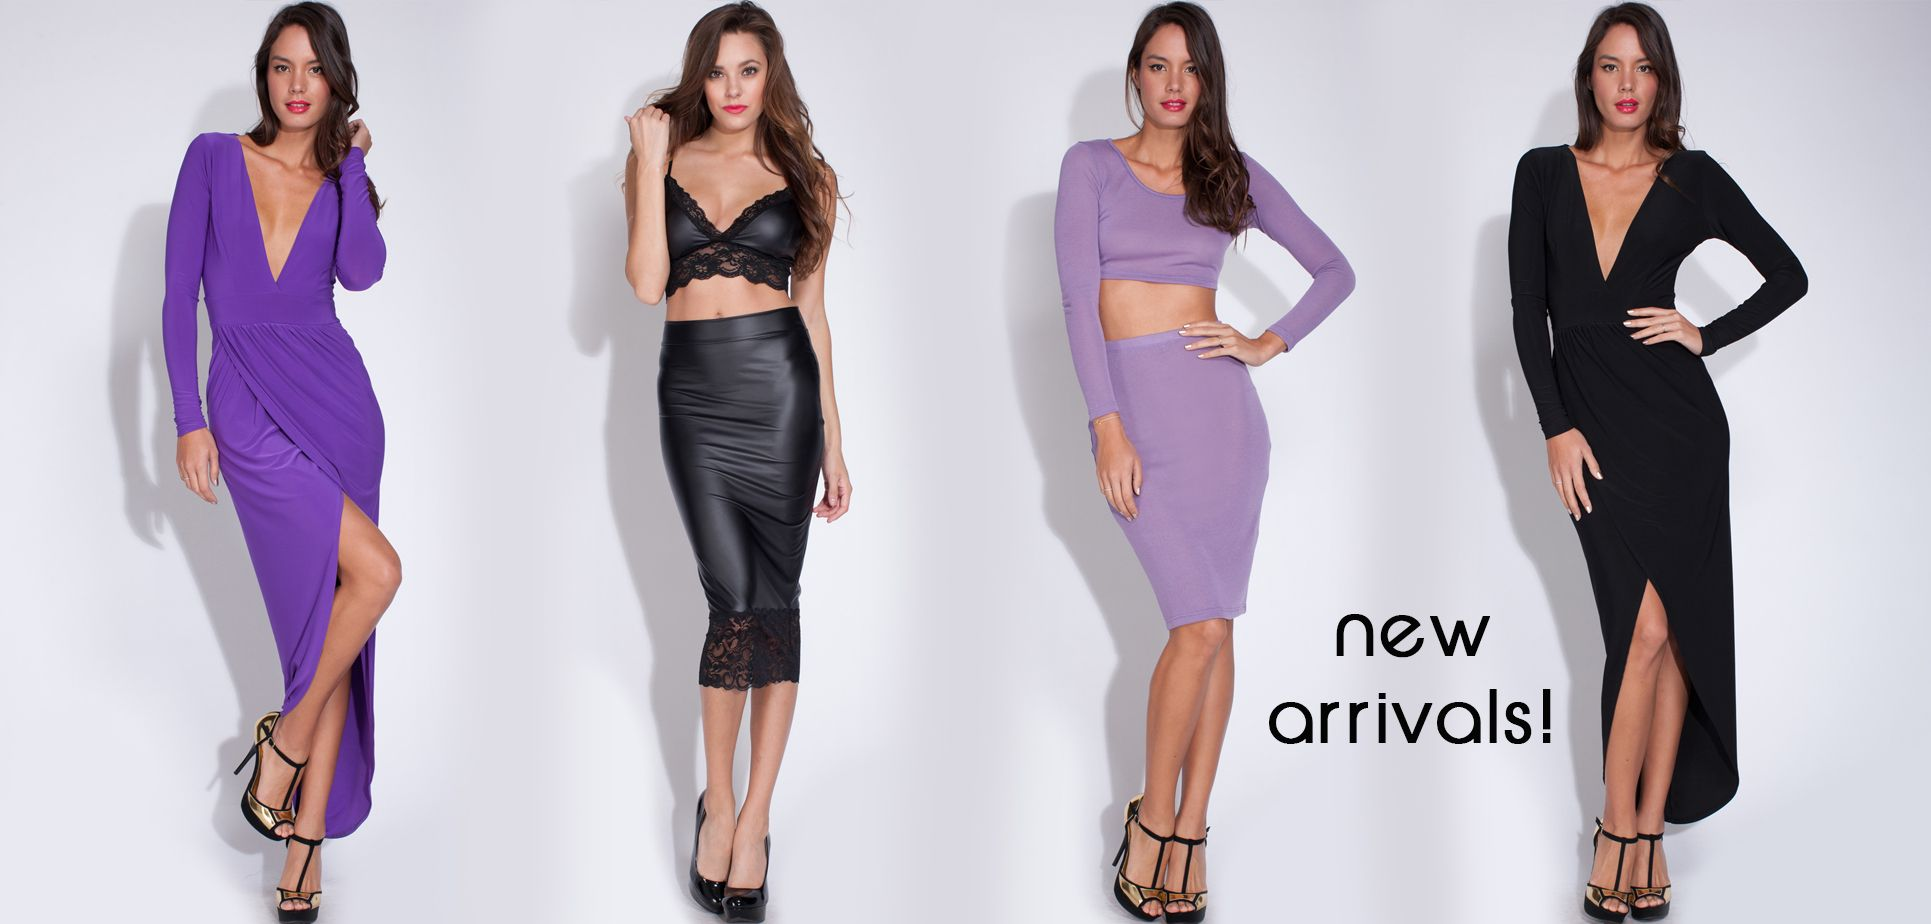 NEW NEW NEW! Check out our New Arrivals Dolls ️ www.LeVixen.com #LeVixen #WomensClothing #SexyDresses #OOTD… | Shopping outfit. Womens dresses ...